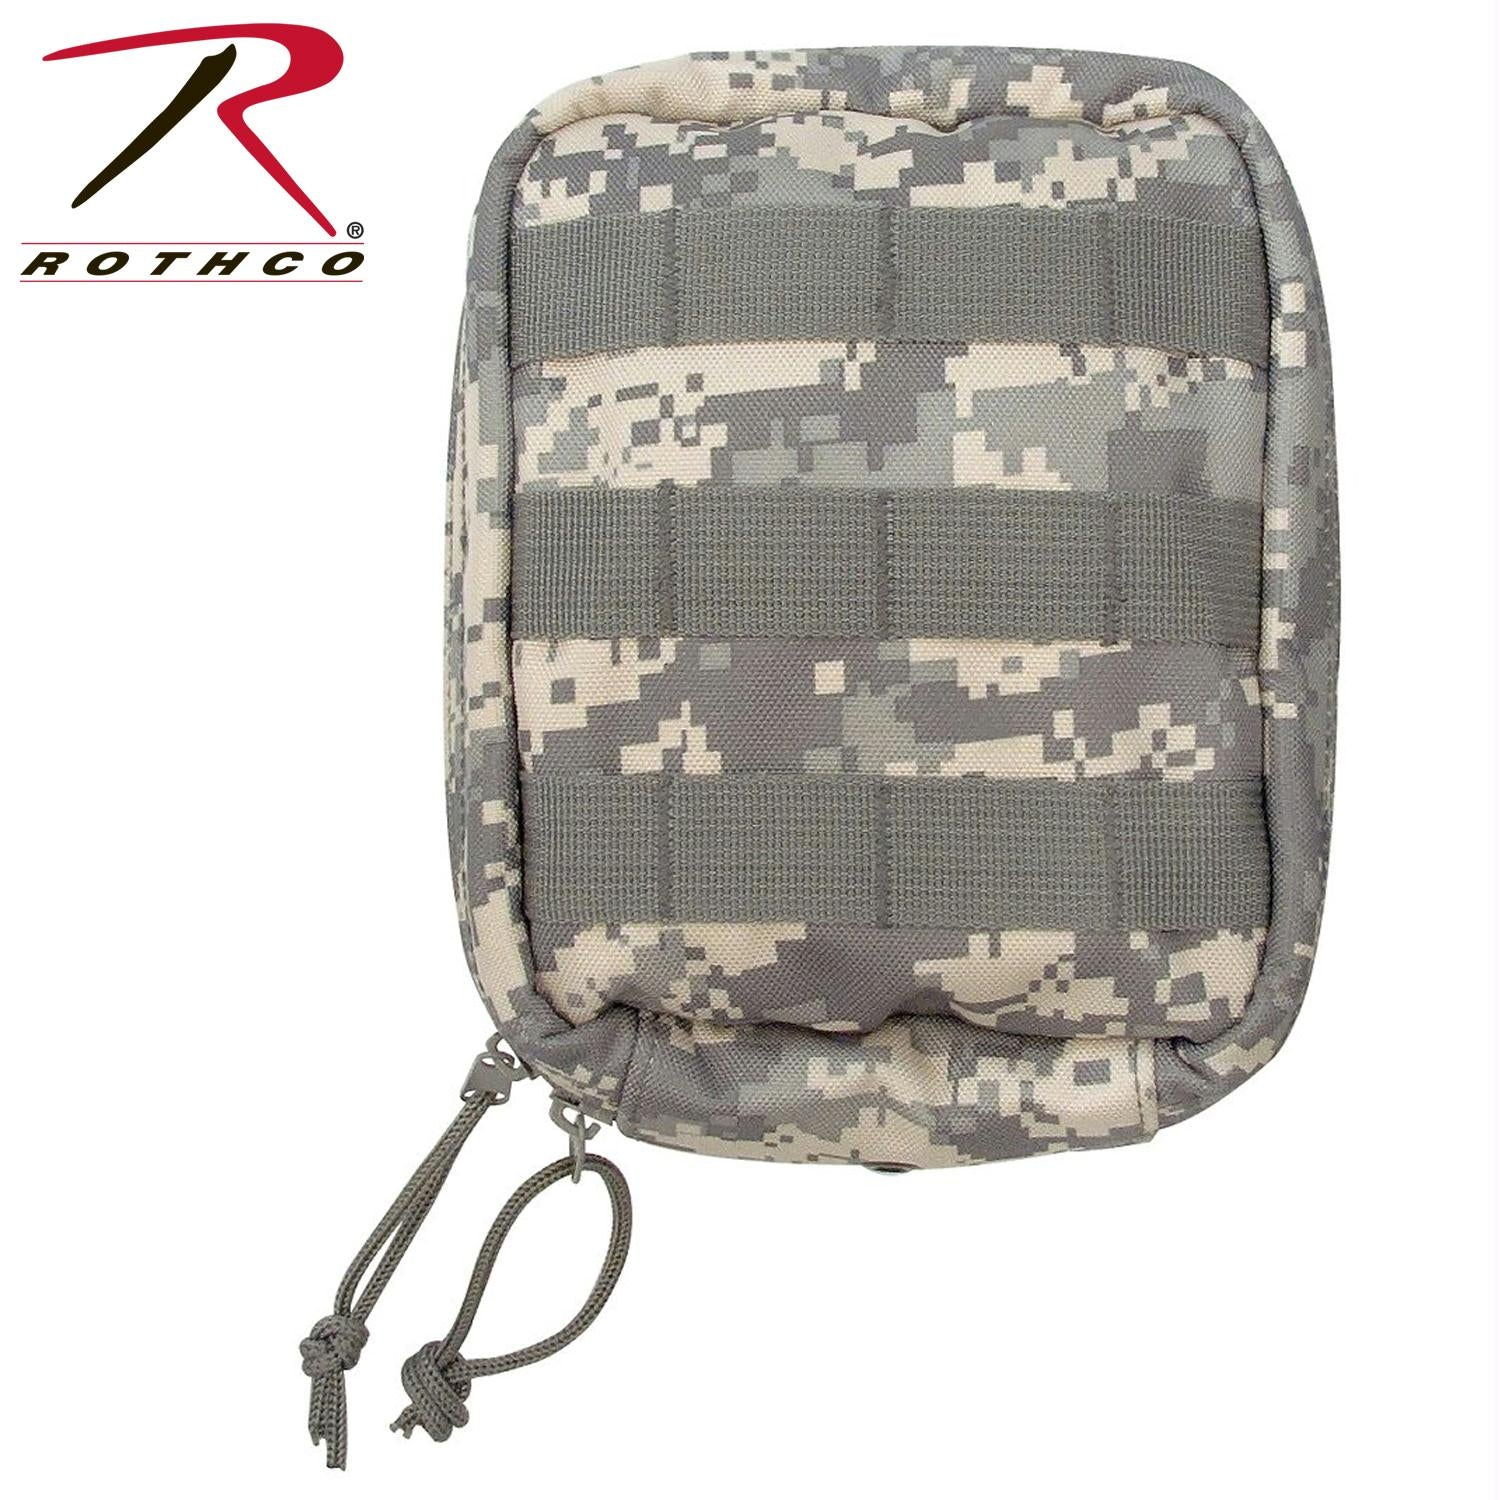 Rothco MOLLE Tactical Trauma & First Aid Kit Pouch - ACU Digital Camo